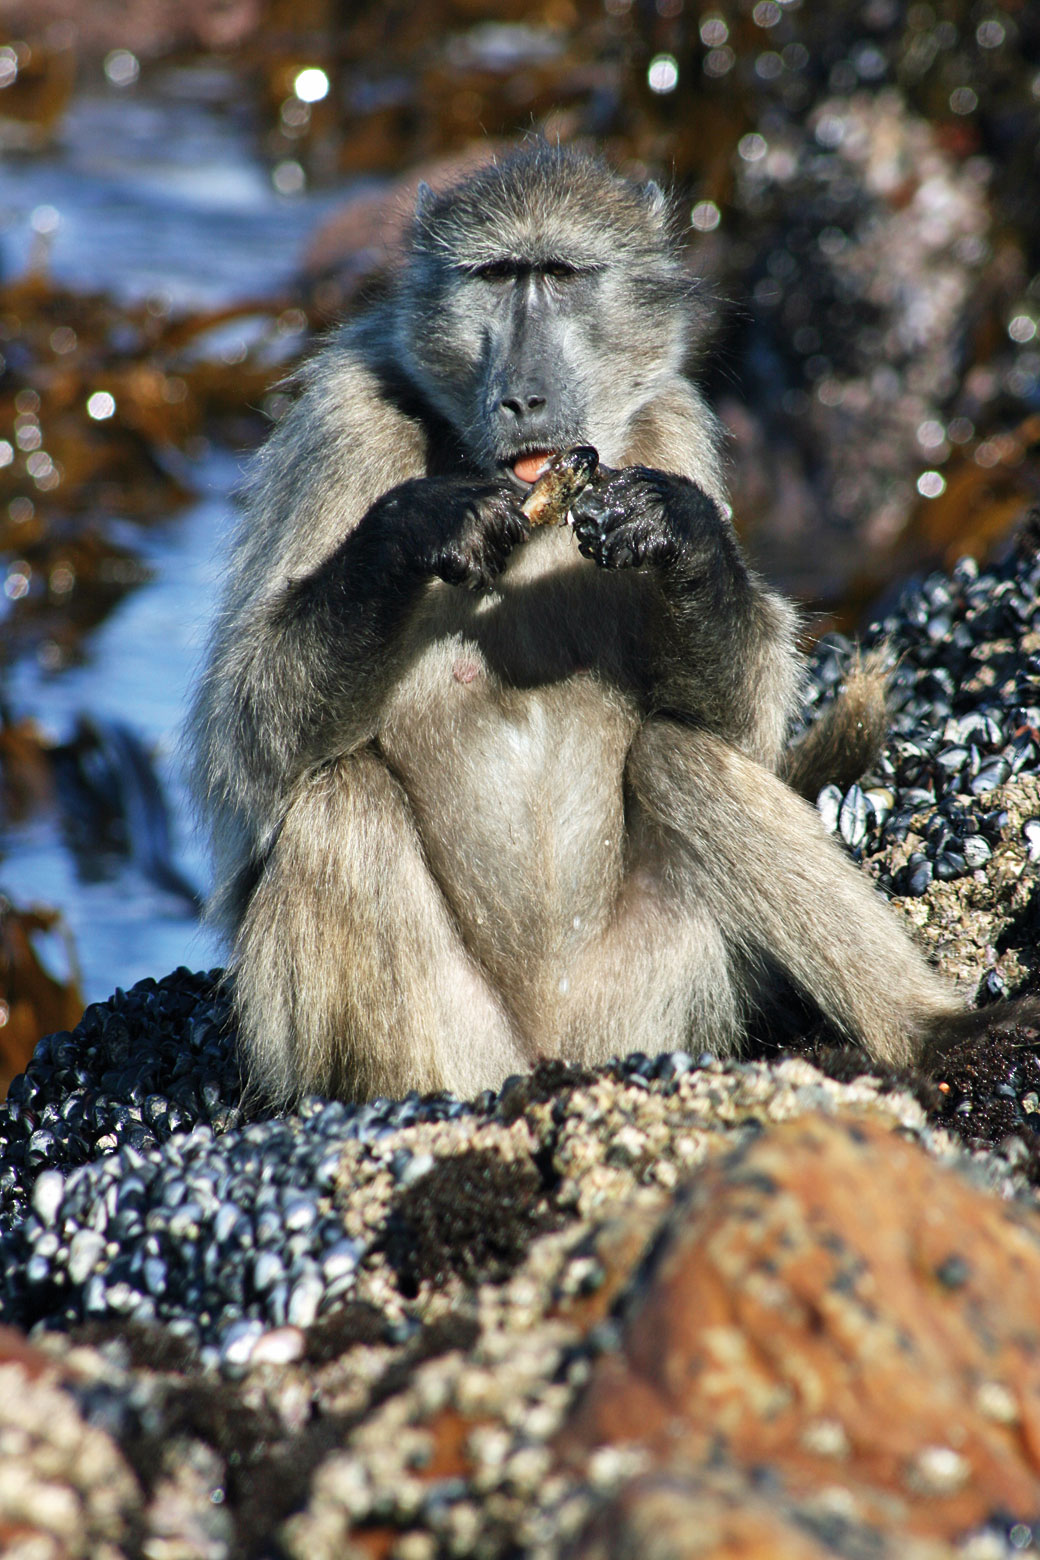 Baboon eating mussel by Matthew Lewis